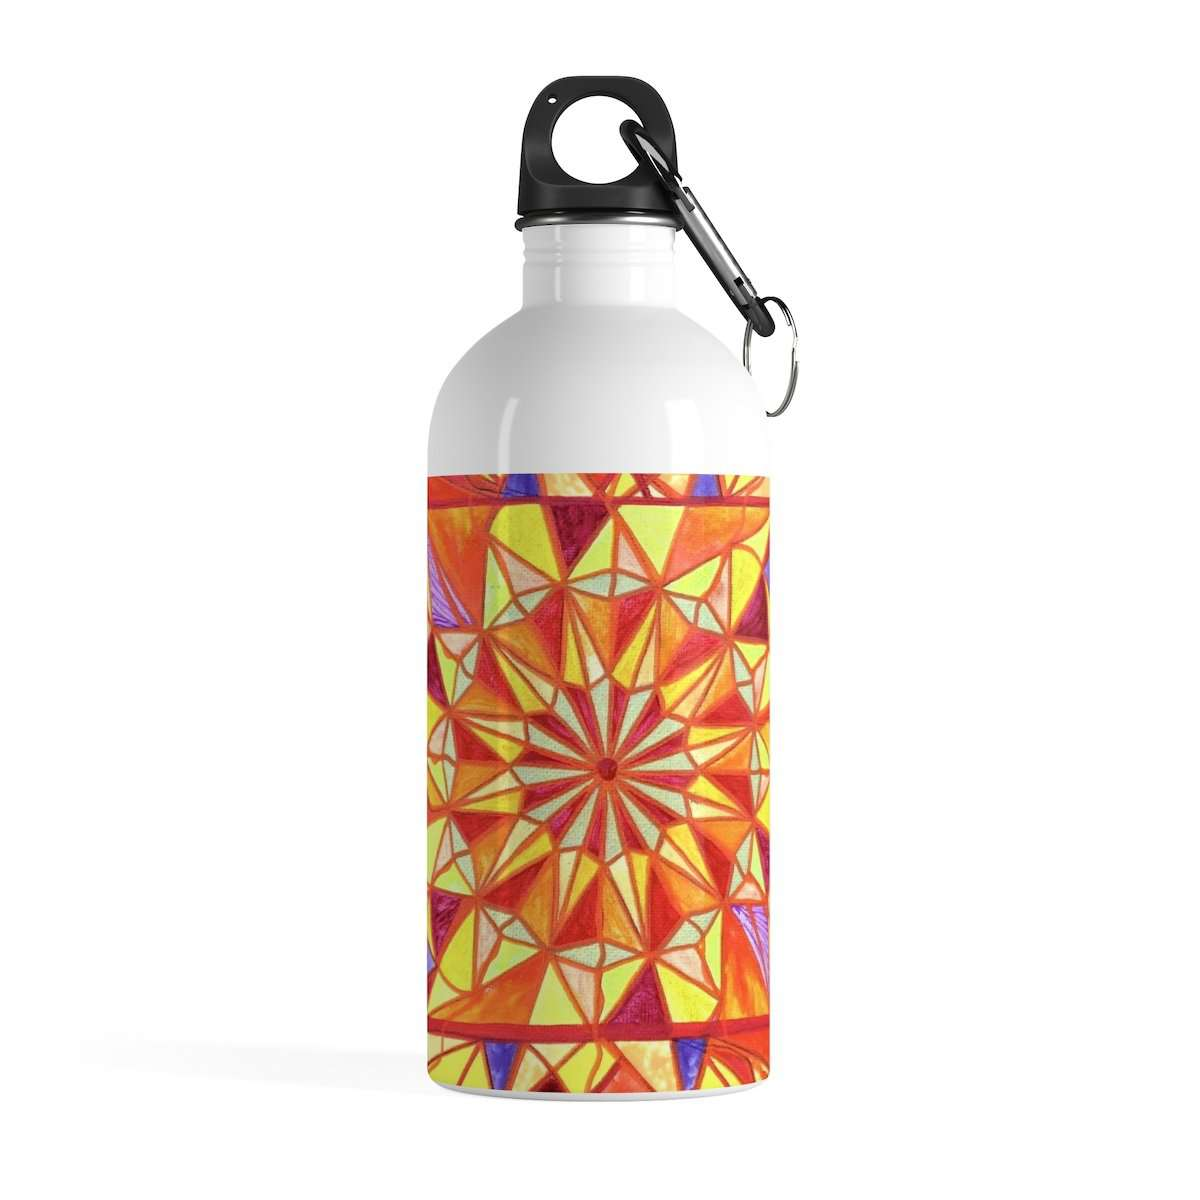 Ambition - Stainless Steel Water Bottle